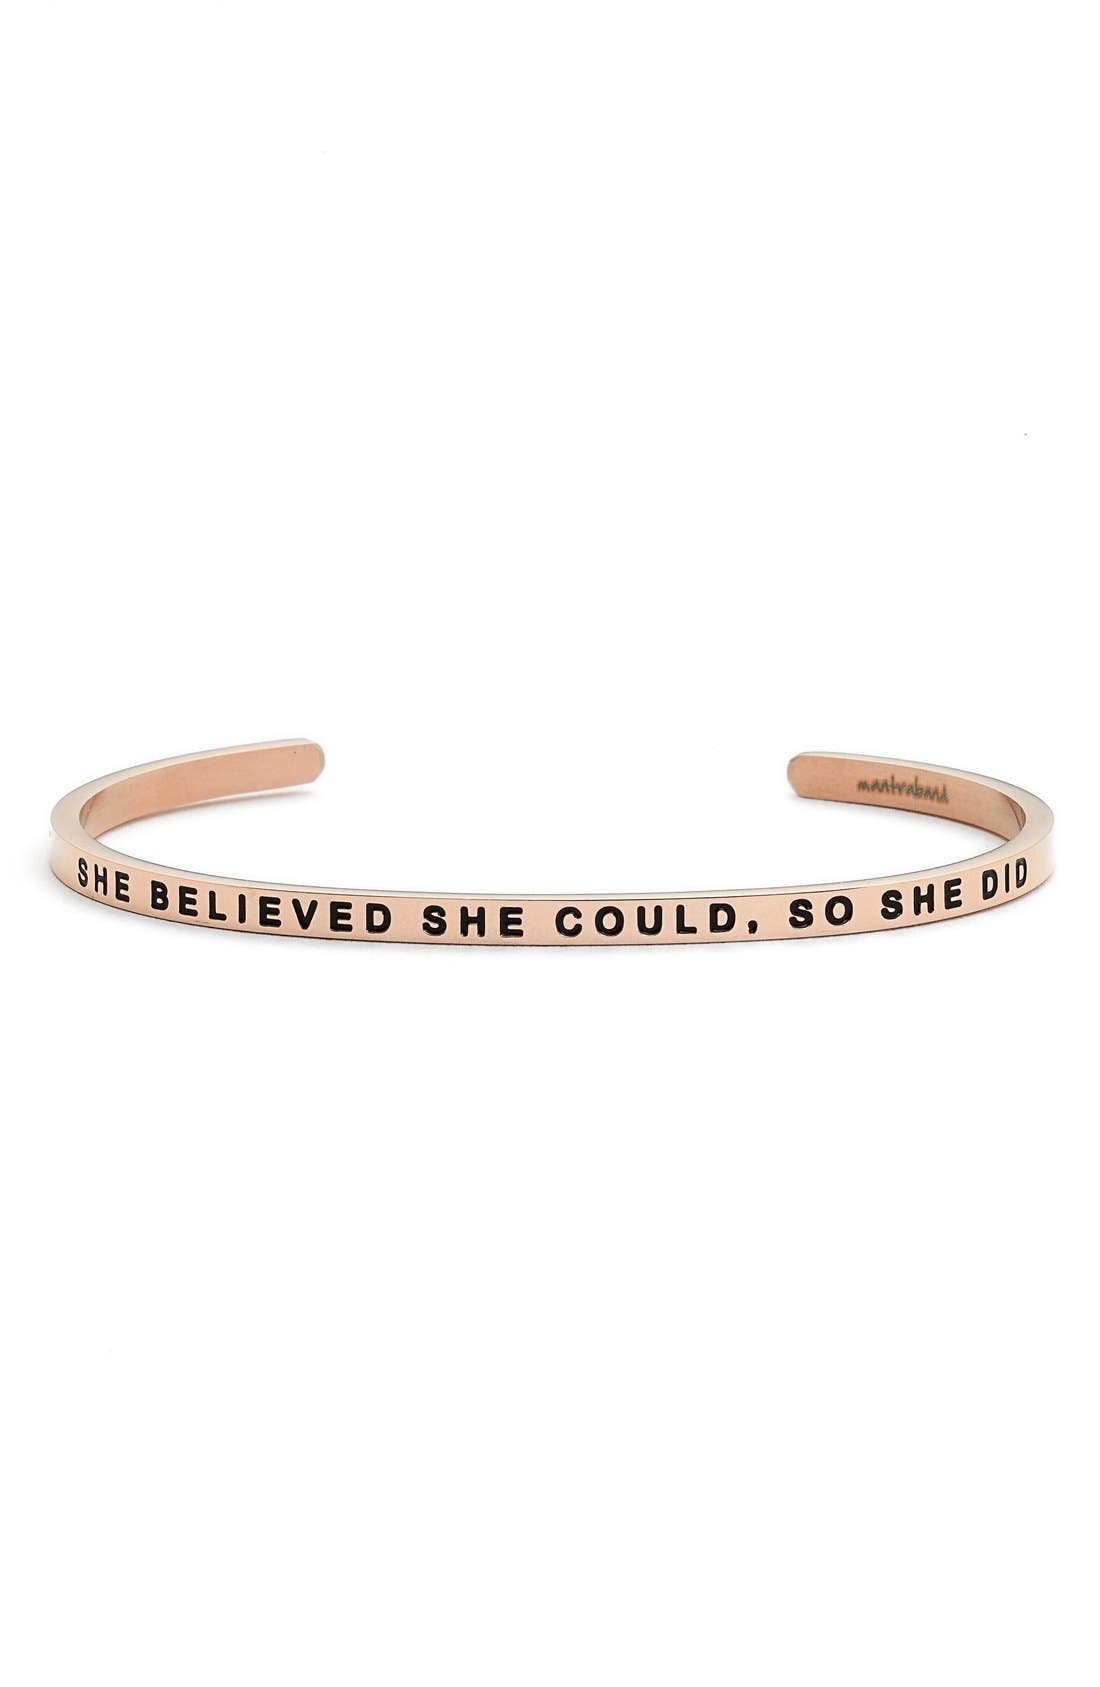 'She Believed She Could' Cuff,                         Main,                         color, ROSE GOLD